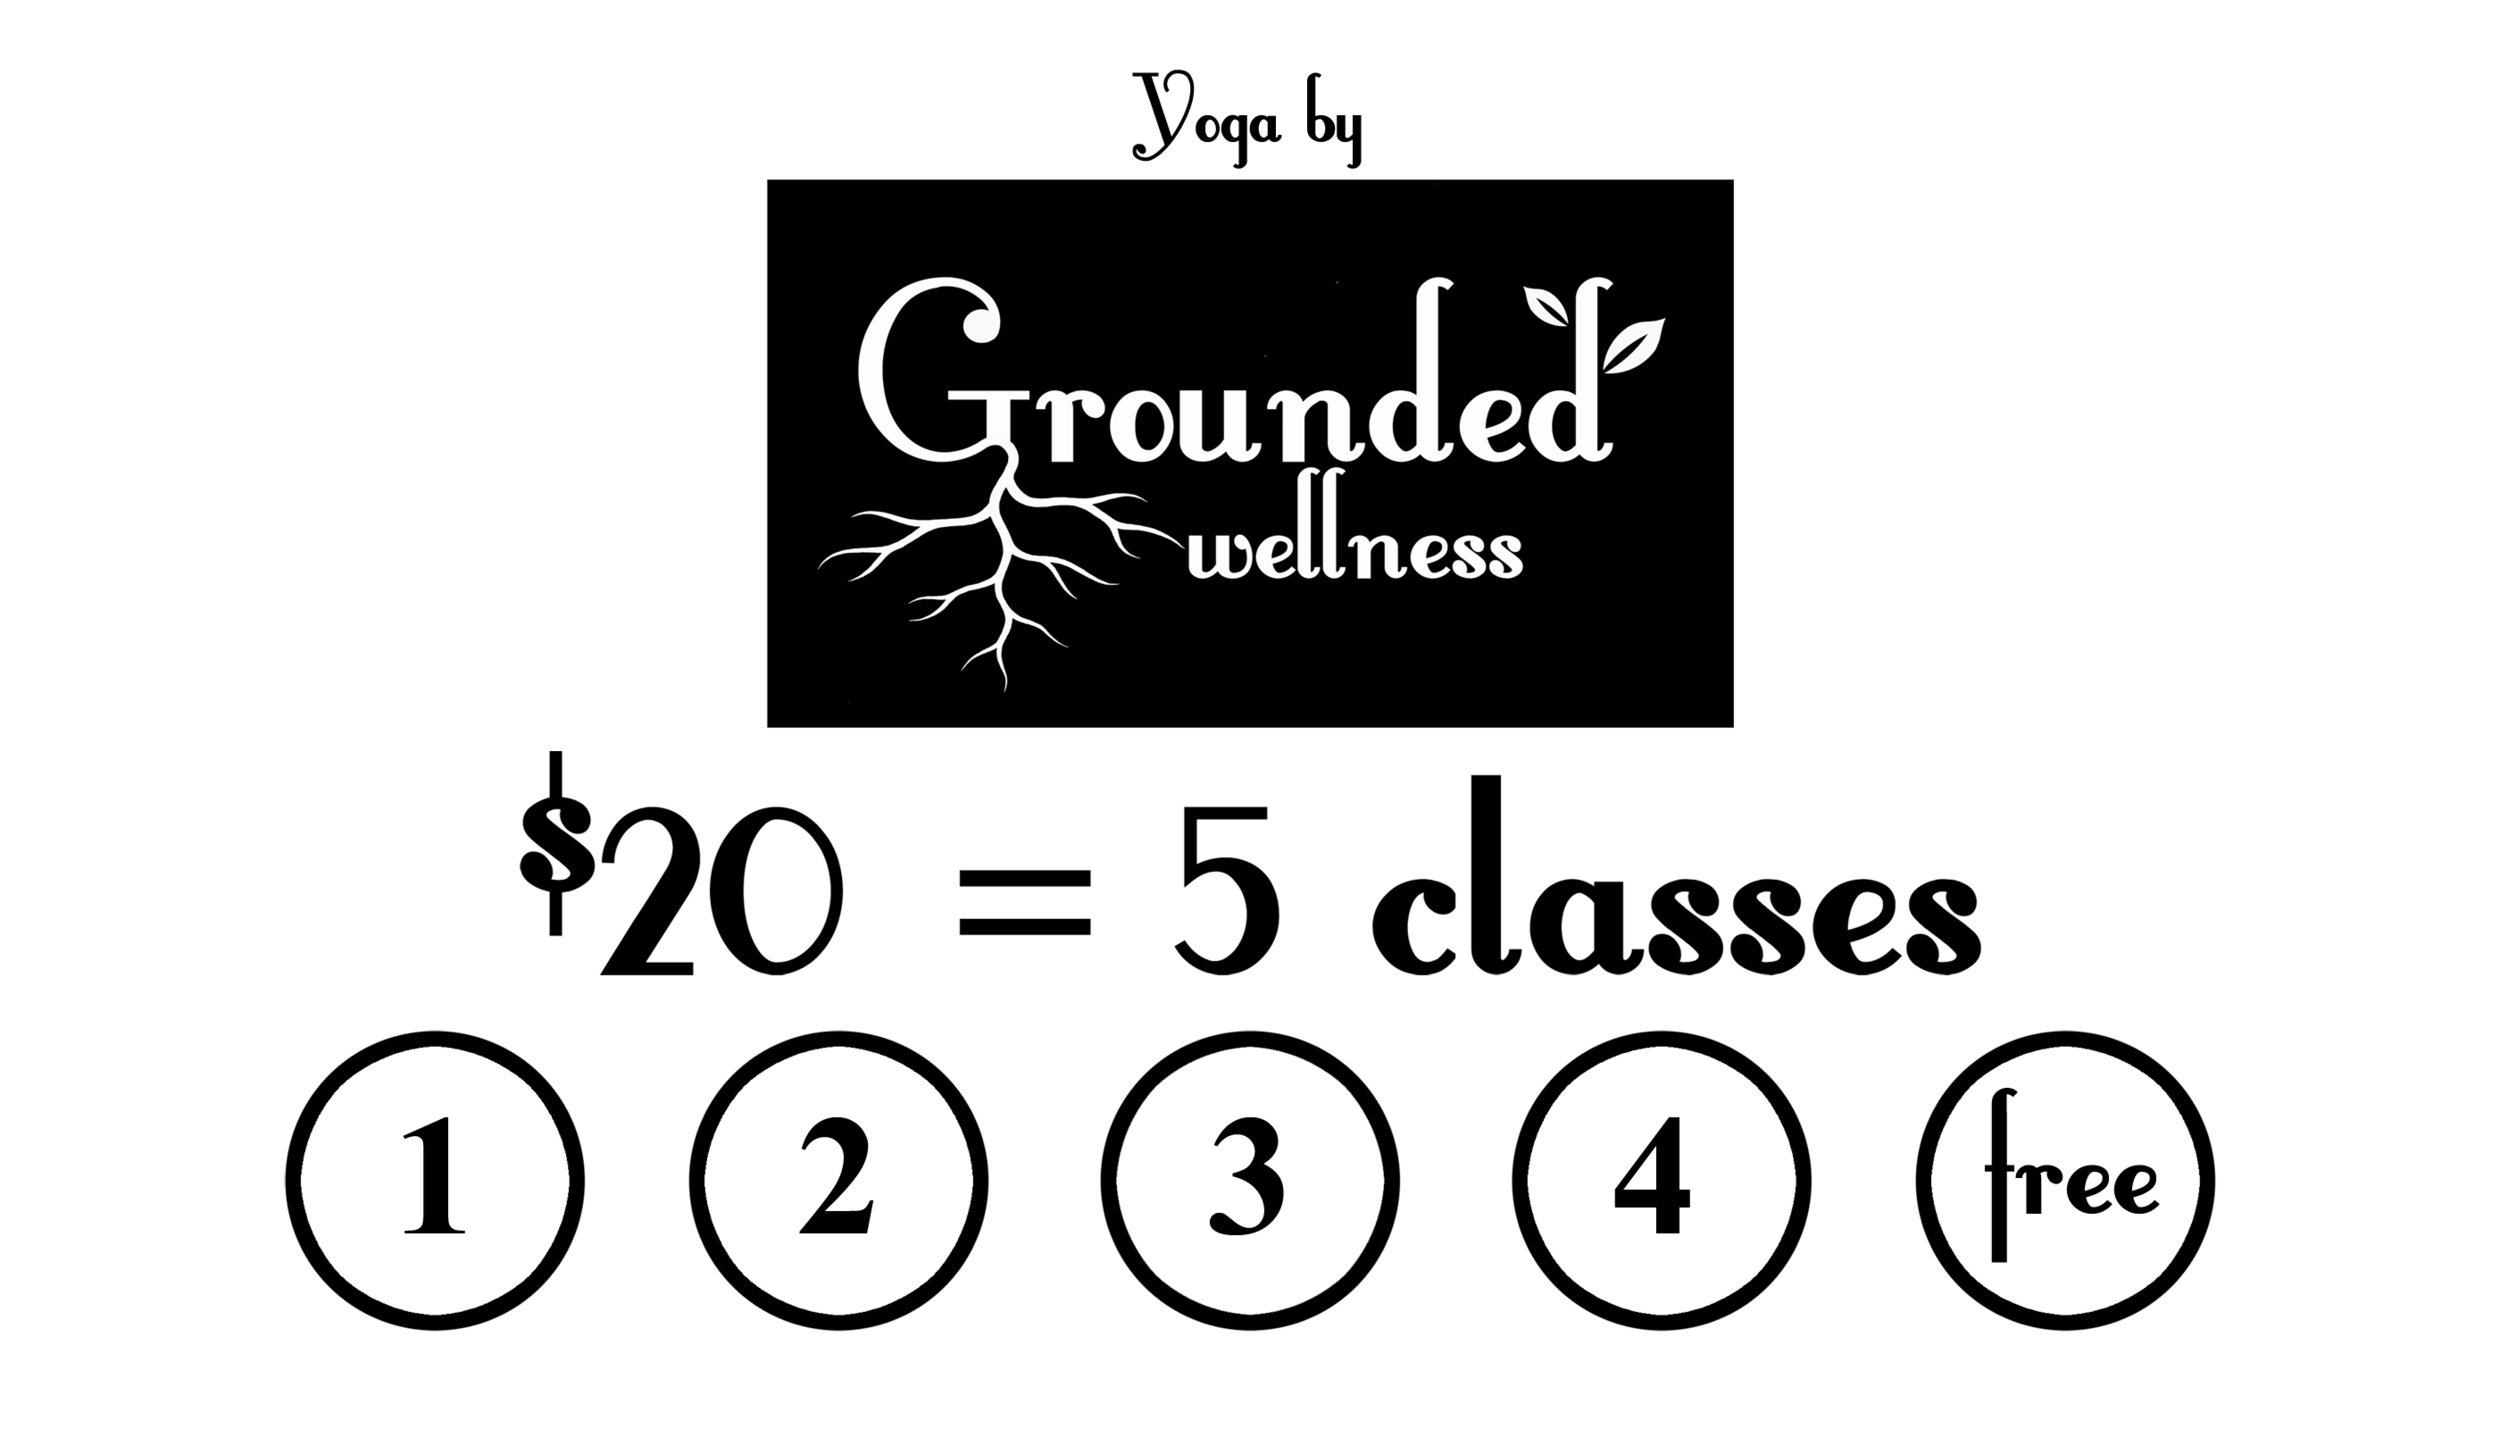 Punch cards get you $4 classes! - Ask for yours!